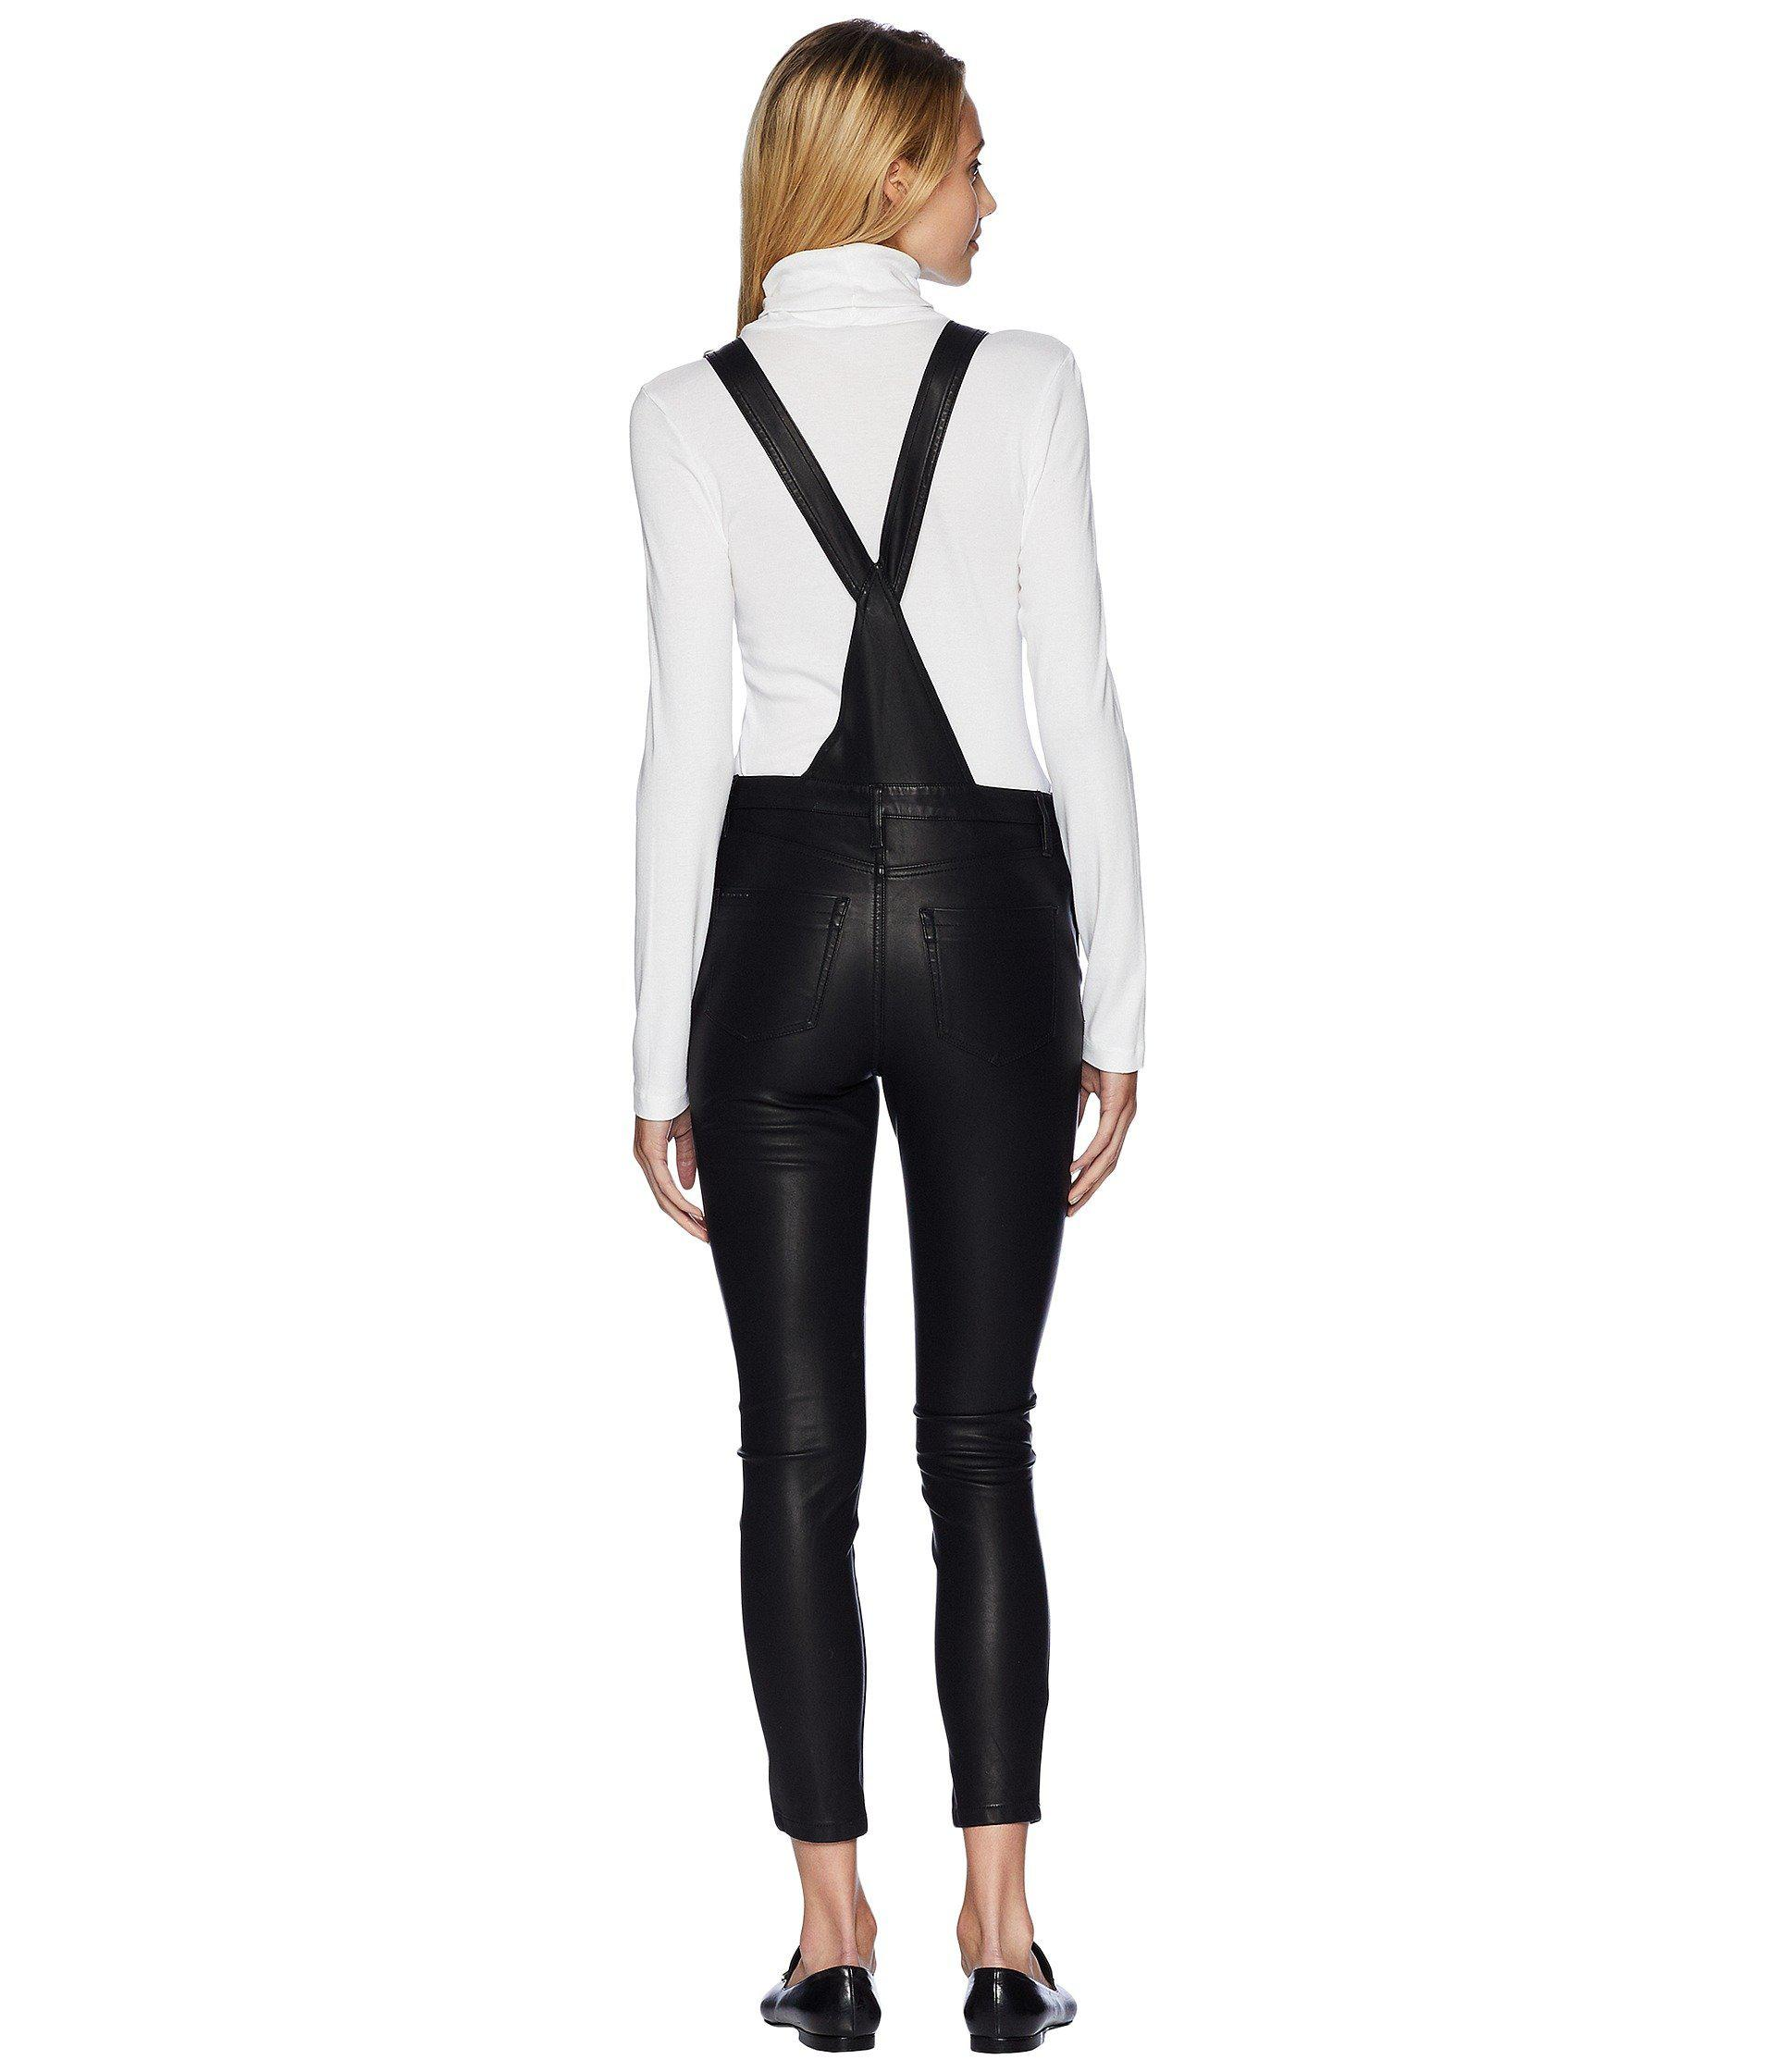 0884ec69b3 Blank NYC Black Vegan Leather Overalls In All Good (all Good ...